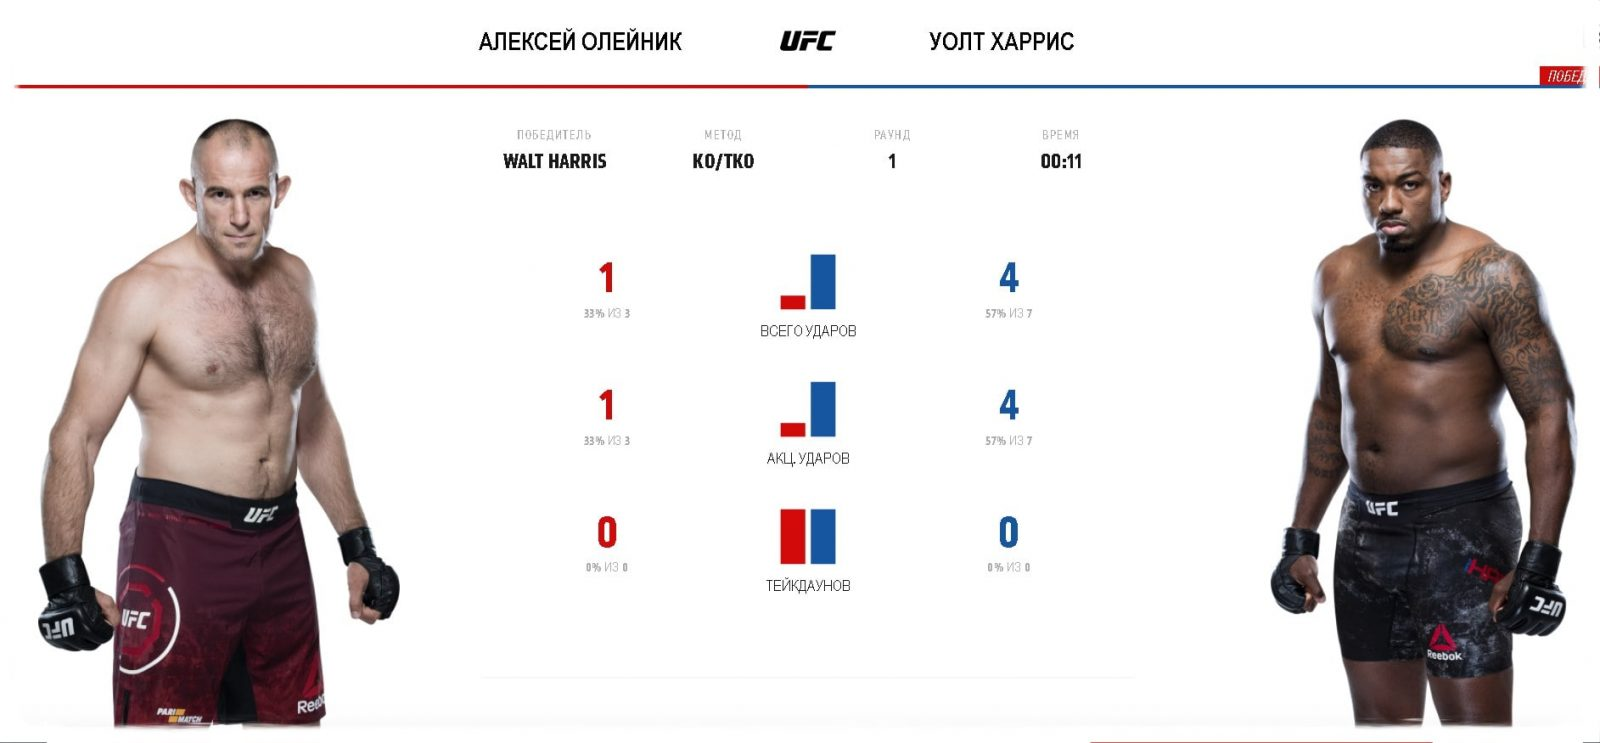 aleksej-olejnikov-vs-uolter-harris-video-boya-ufc-on-espn-4-rafaehl-dos-anos-leon-ehdvards-san-antonio_1